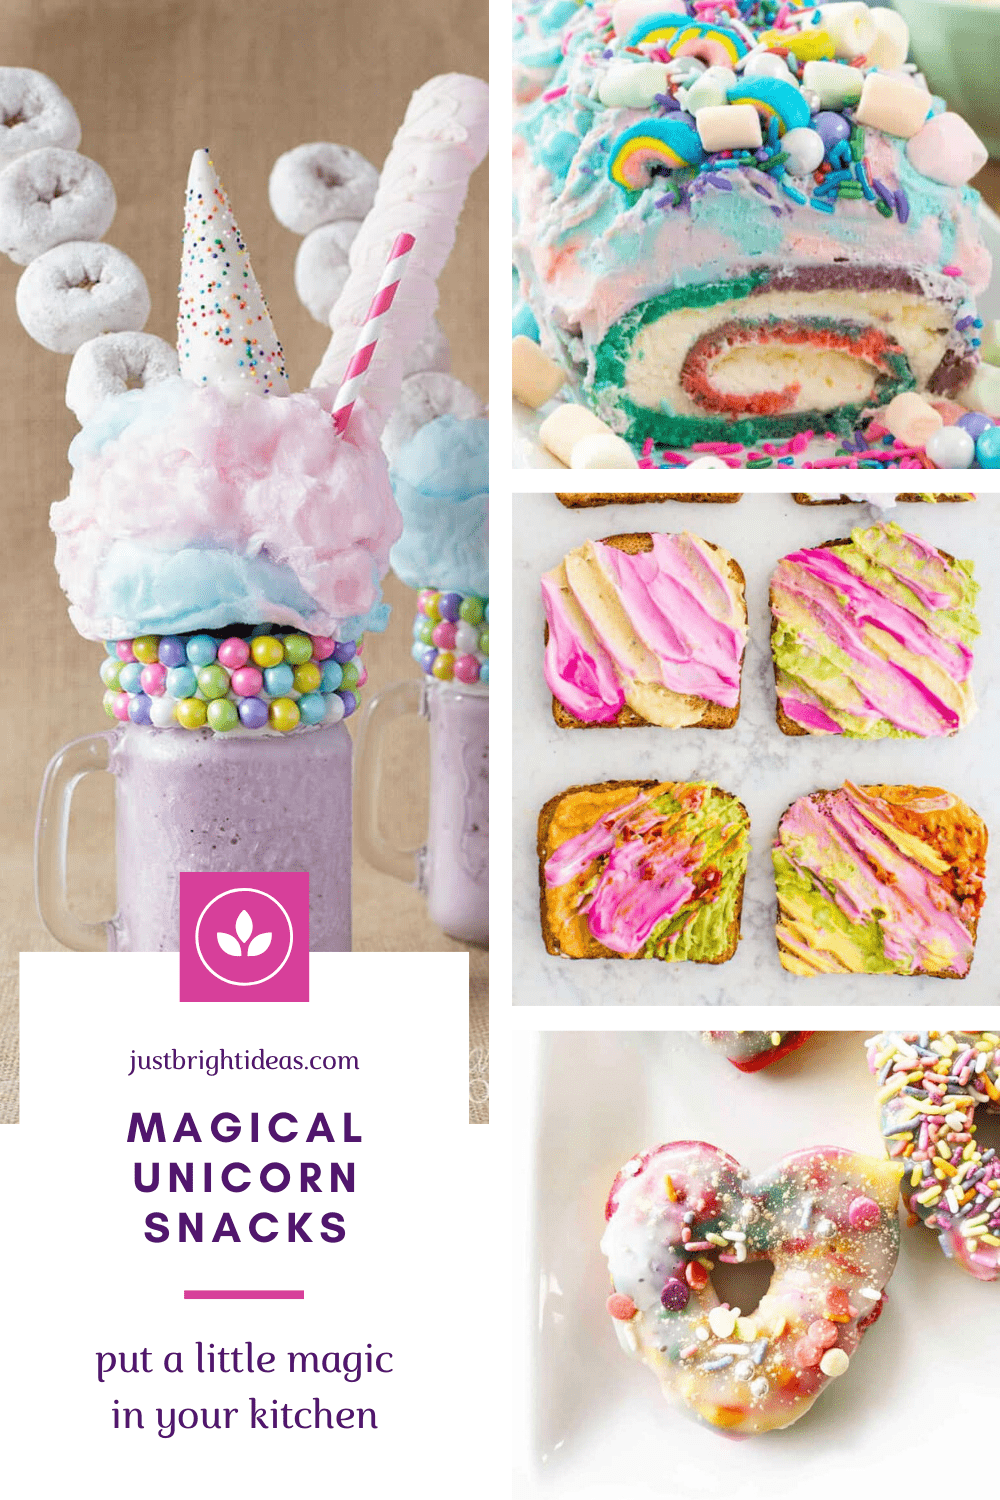 We are totally in love with these unicorn snacks! You could eat magical snacks all day from breakfast toast to freakshakes!